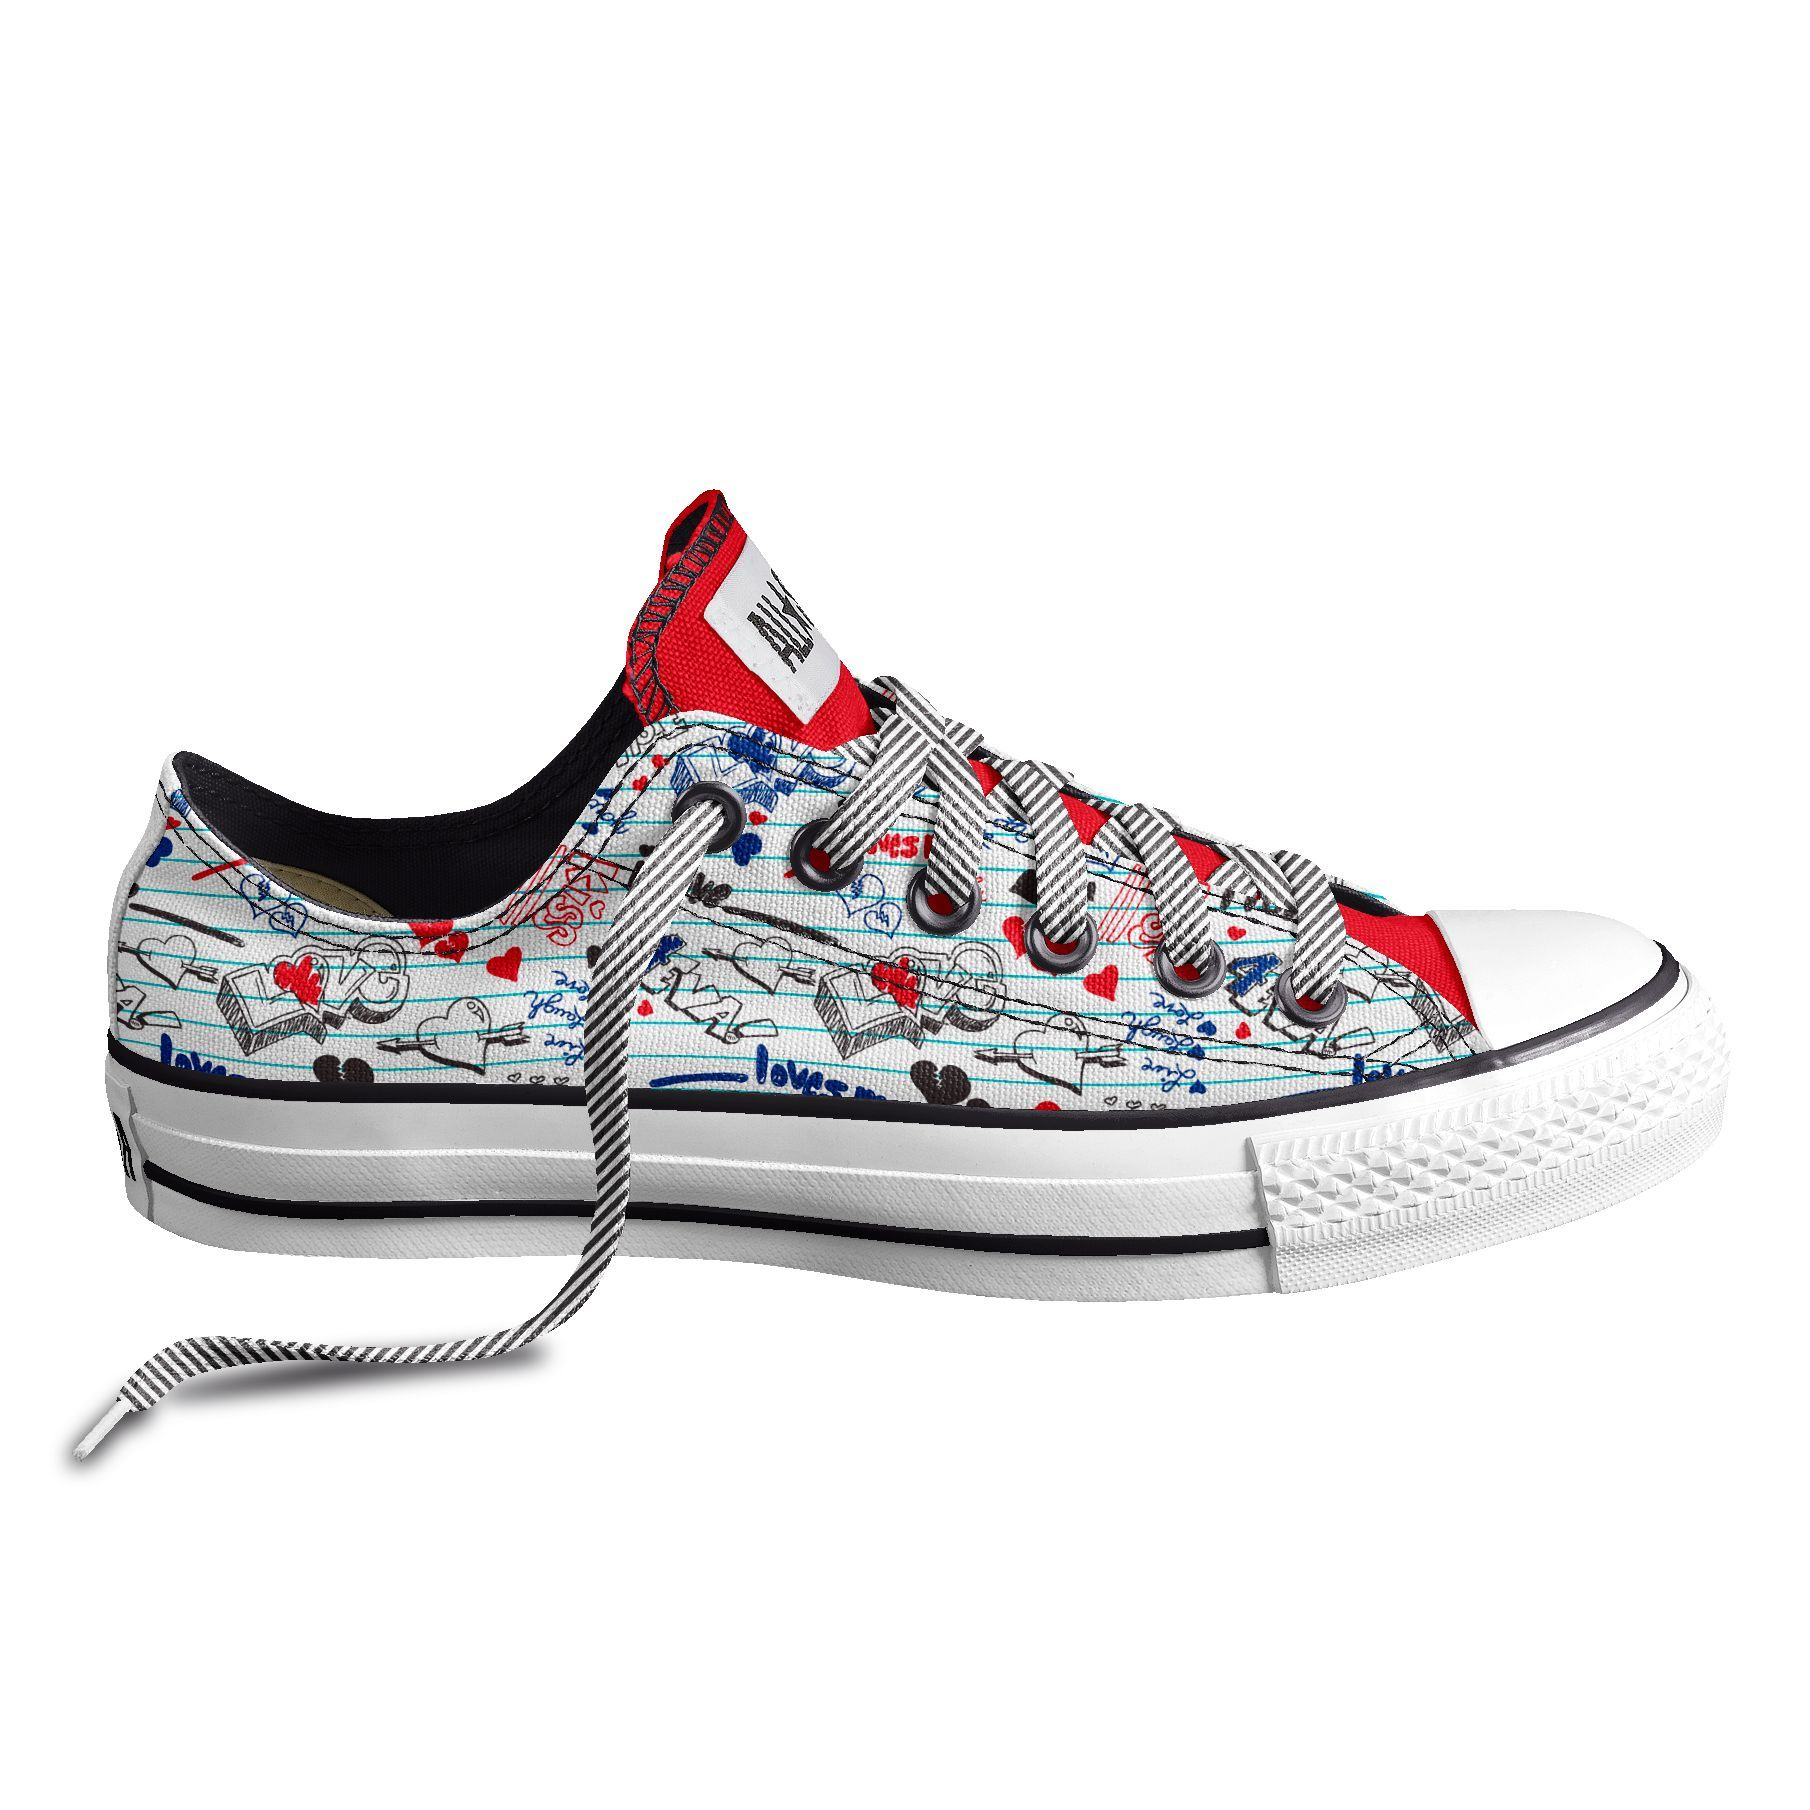 converse chuck taylor design your own